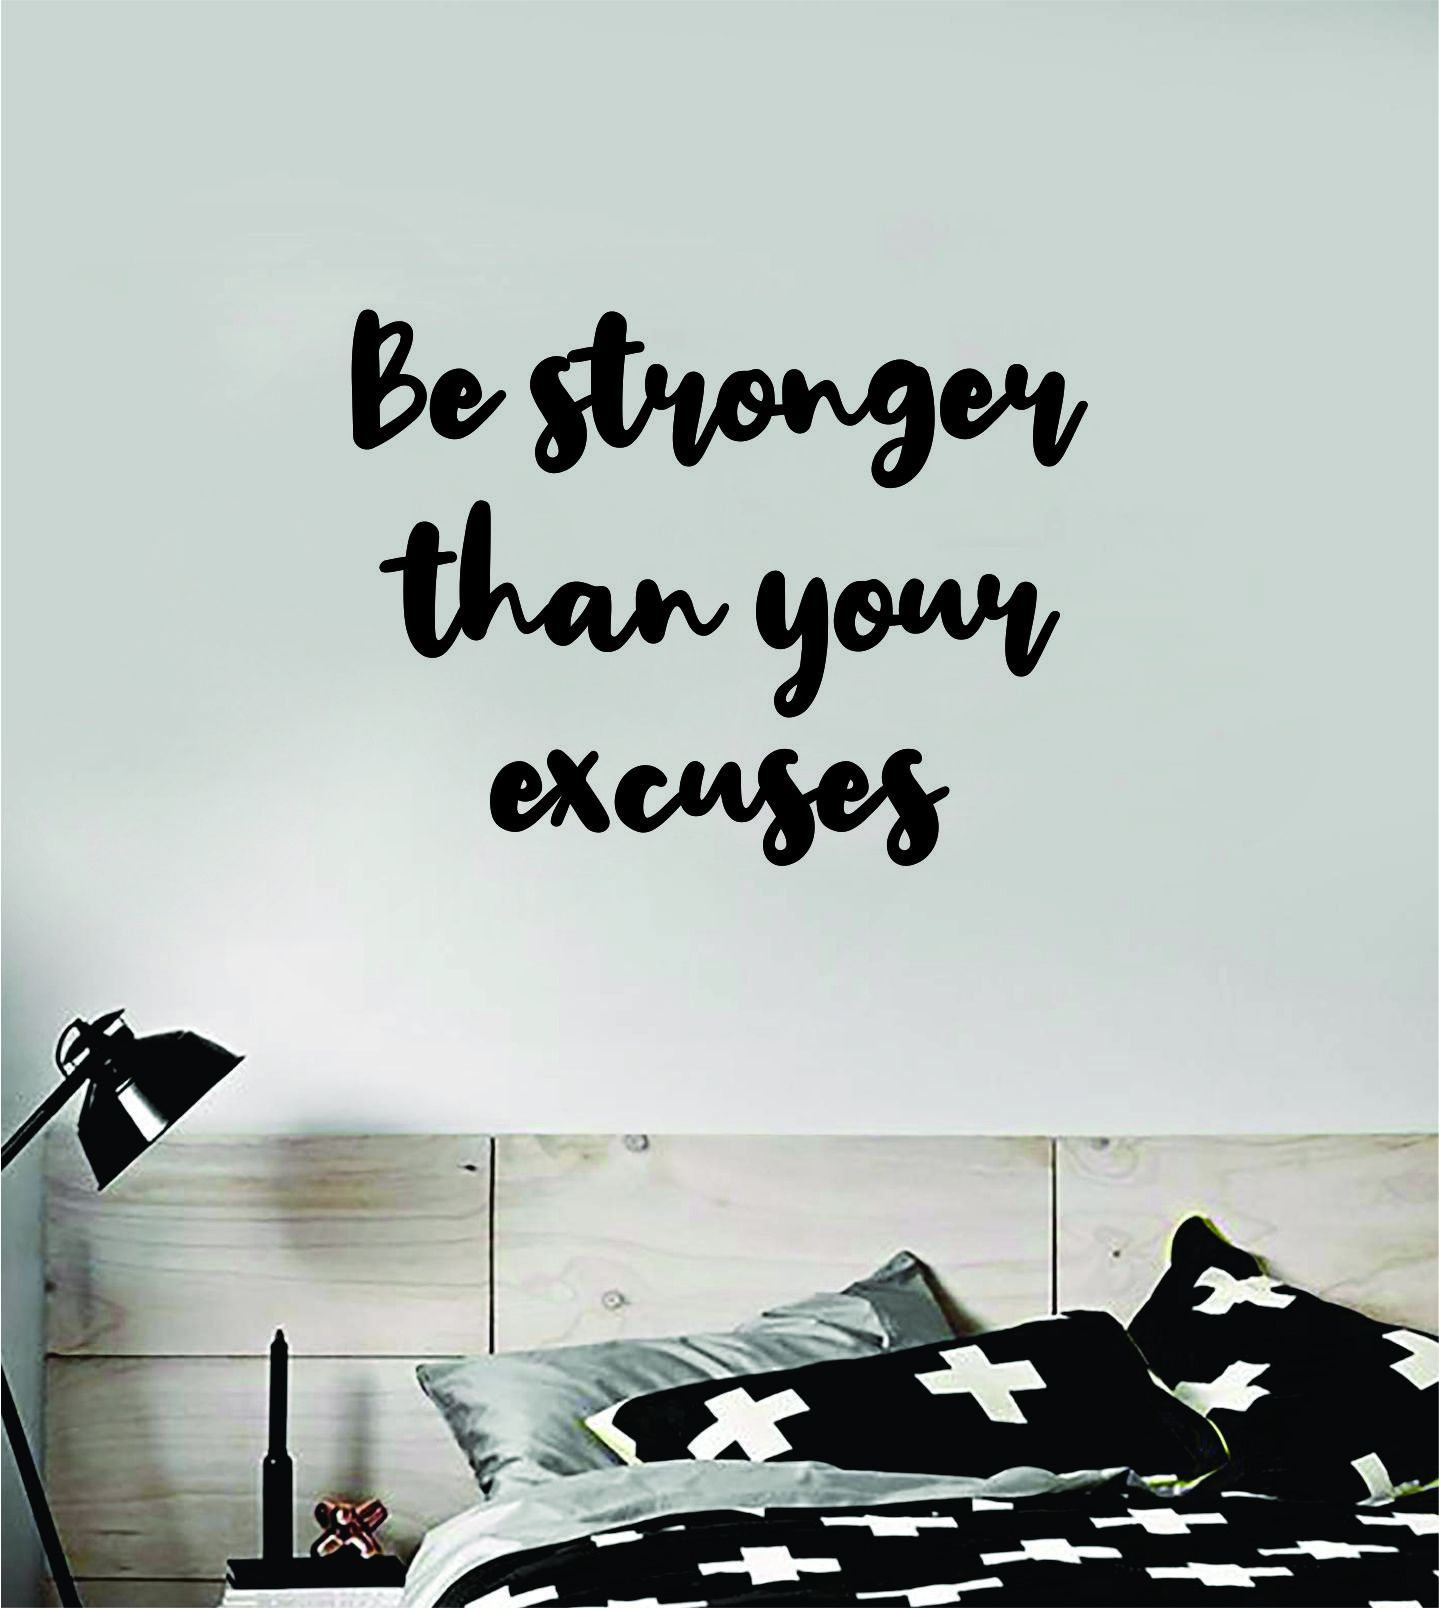 Be Stronger Excuses V4 Decal Sticker Wall Vinyl Art Wall Bedroom Room Home Decor Inspirational Motivational Teen Sports Gym Fitness - vivid blue